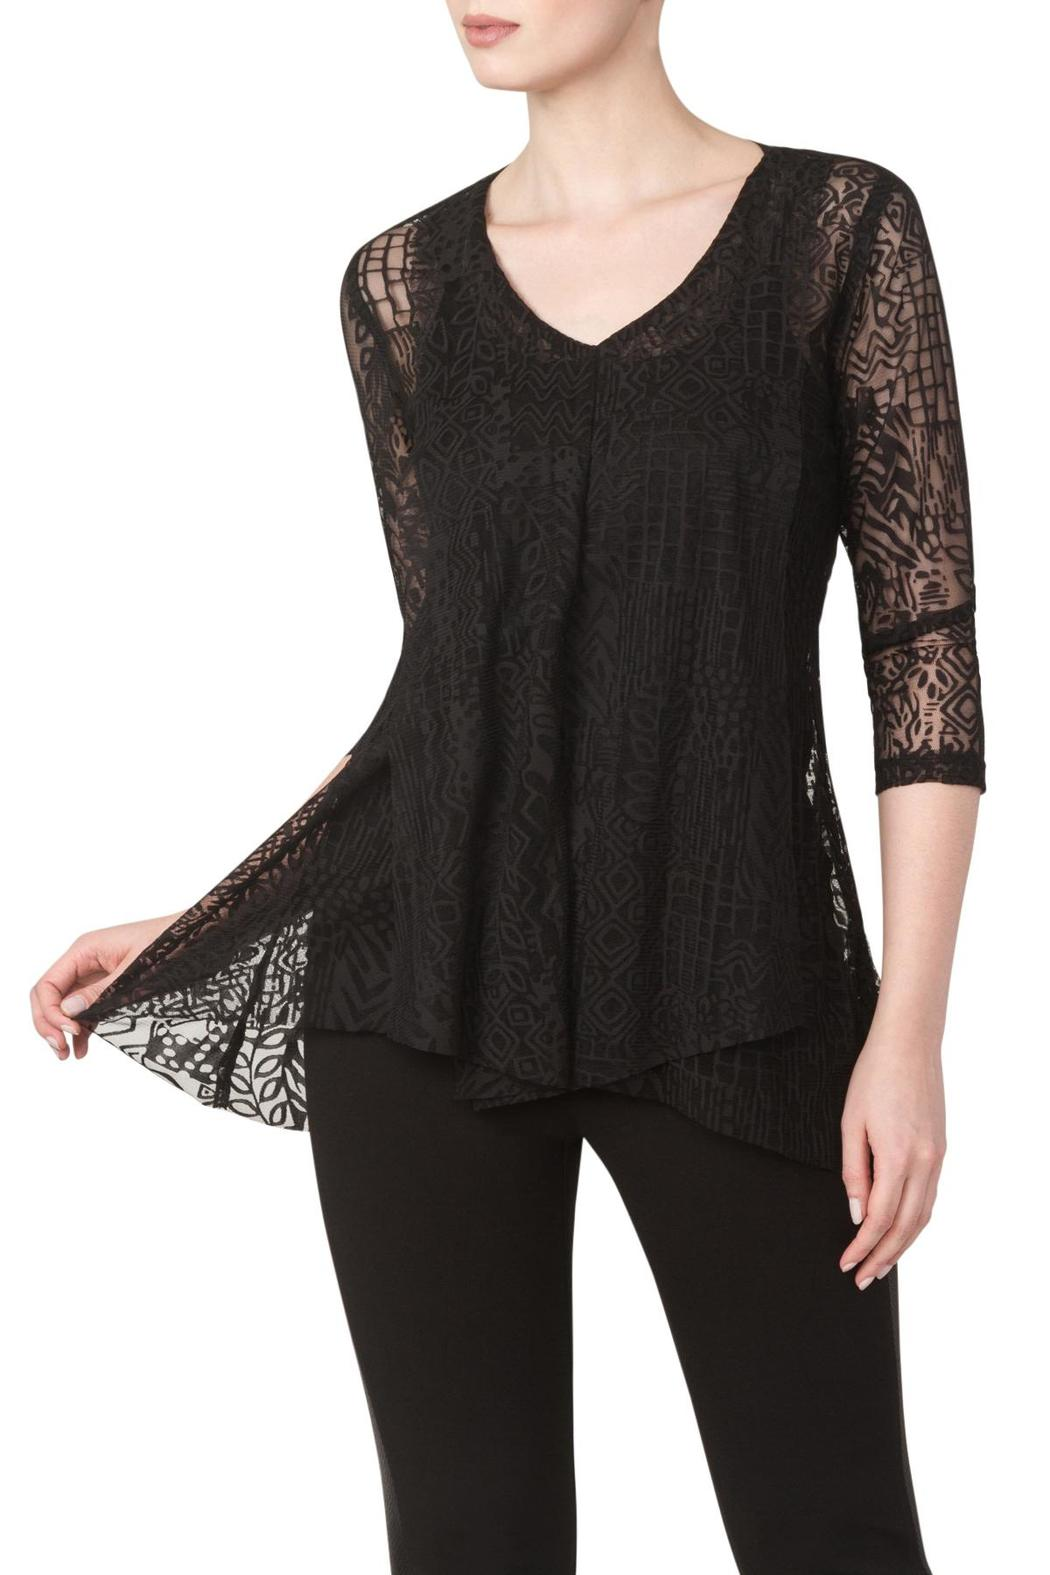 Black Tunic Top. Update a closet with some ladies tunic tops. The classy tunic style is an easy way to add sophistication to any outfit. Pick from long-sleeve tops for cooler fall and winter days or some three-quarter sleeve tunics for those warm summer days. Choose from solid colors or for those who like to add contrast to their outfit, pick some in fun patterns to get a cool, casual look.